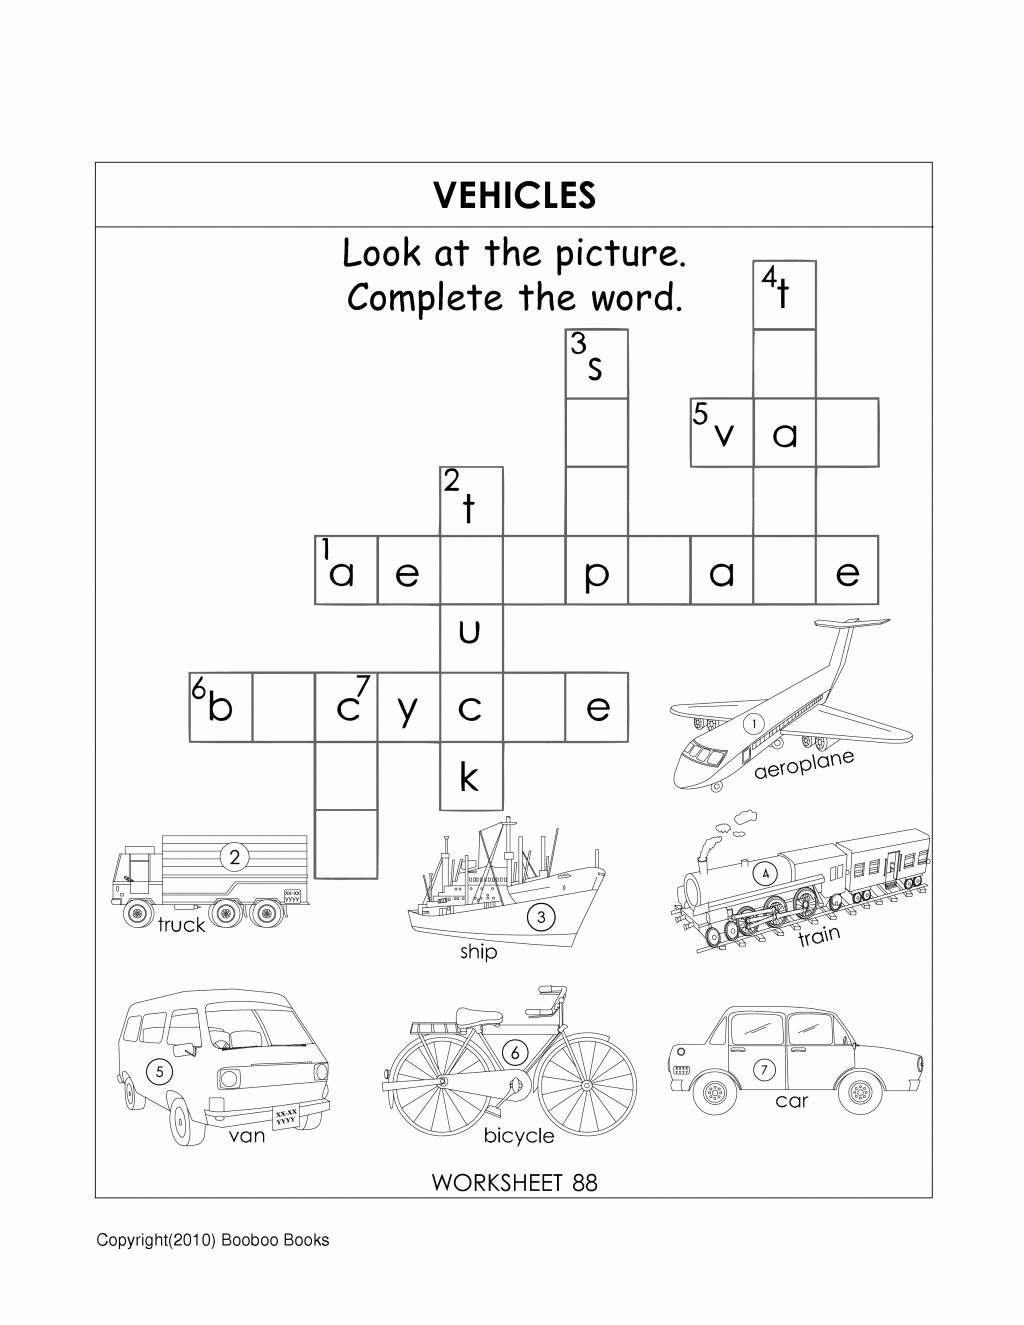 Computer Worksheets for Middle School Lovely 20 Puter Worksheets for Middle School